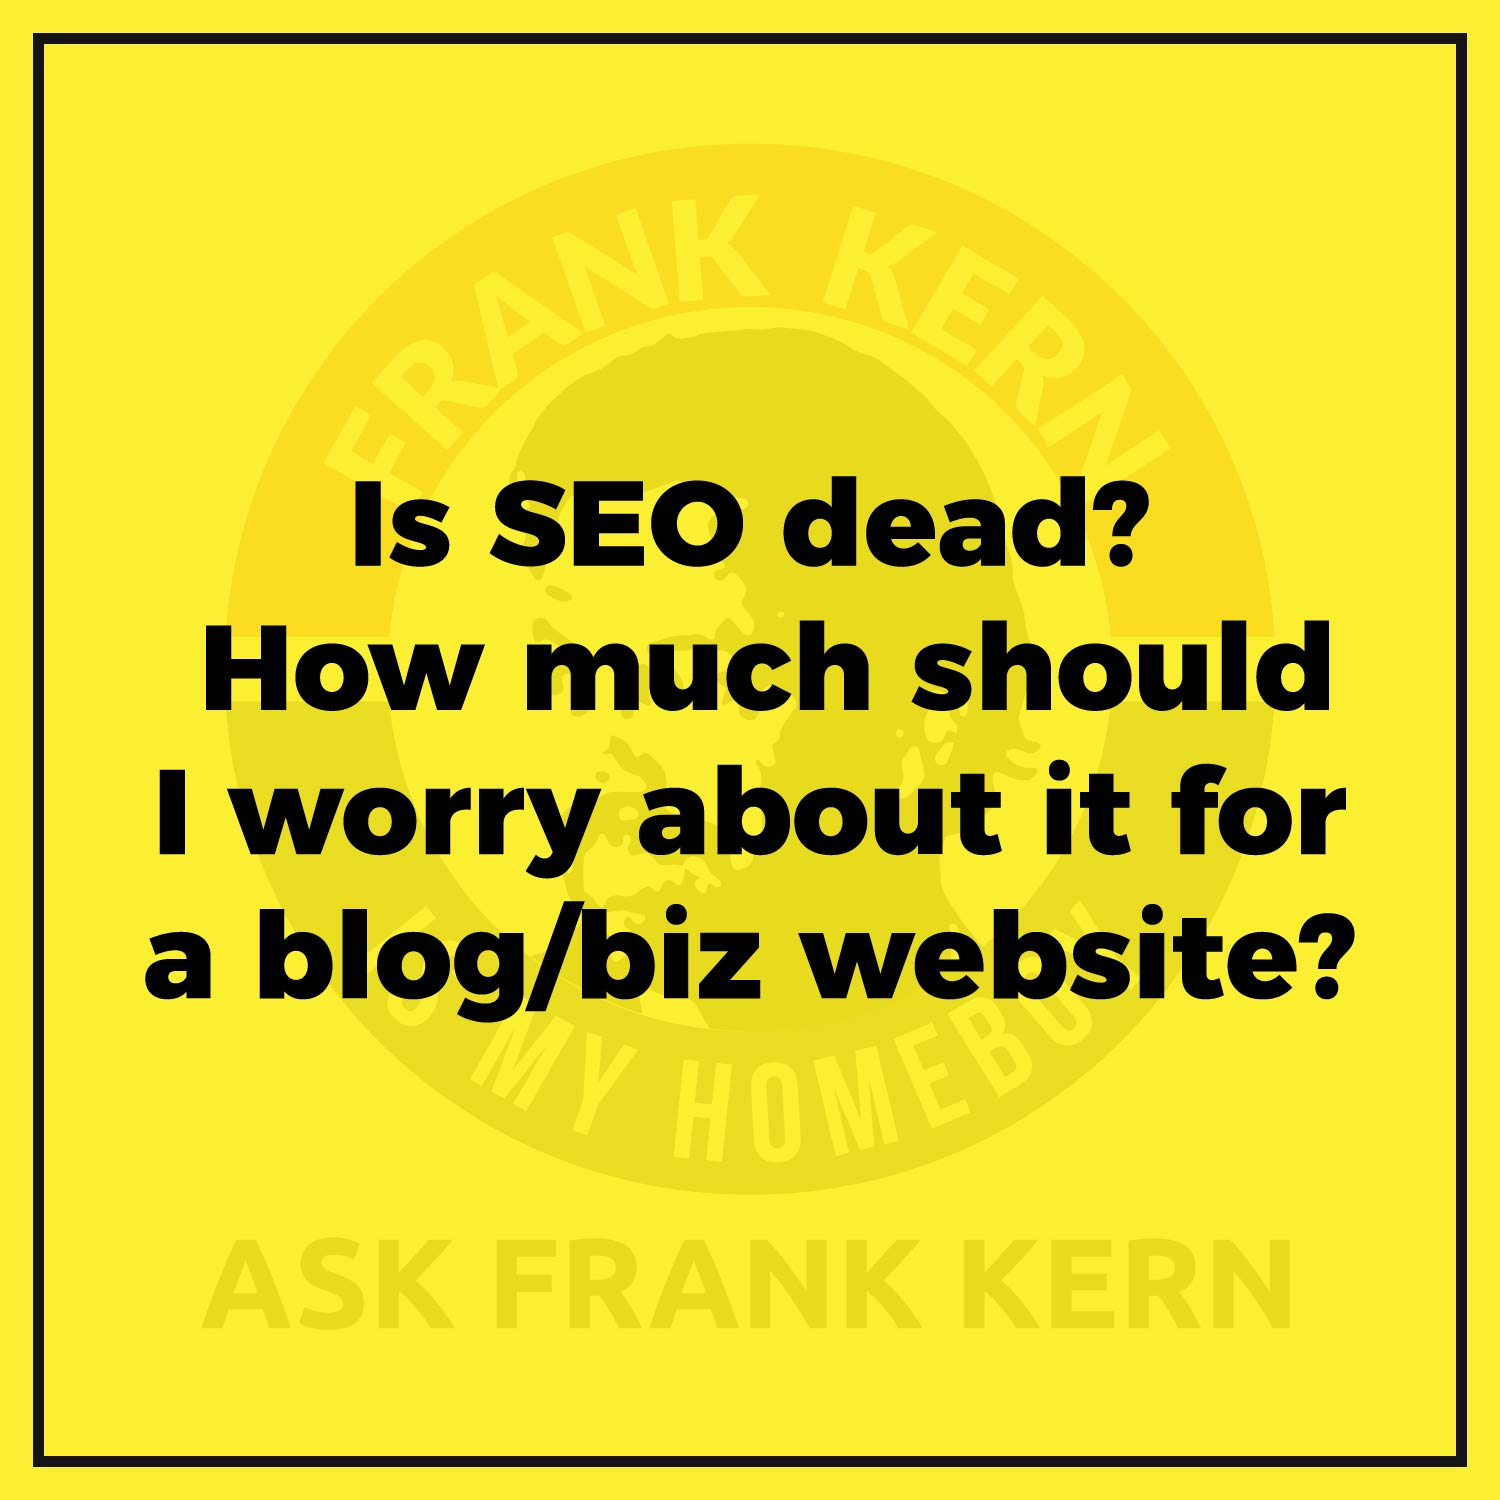 Is SEO dead? How much should I worry about it for a blog/biz website?